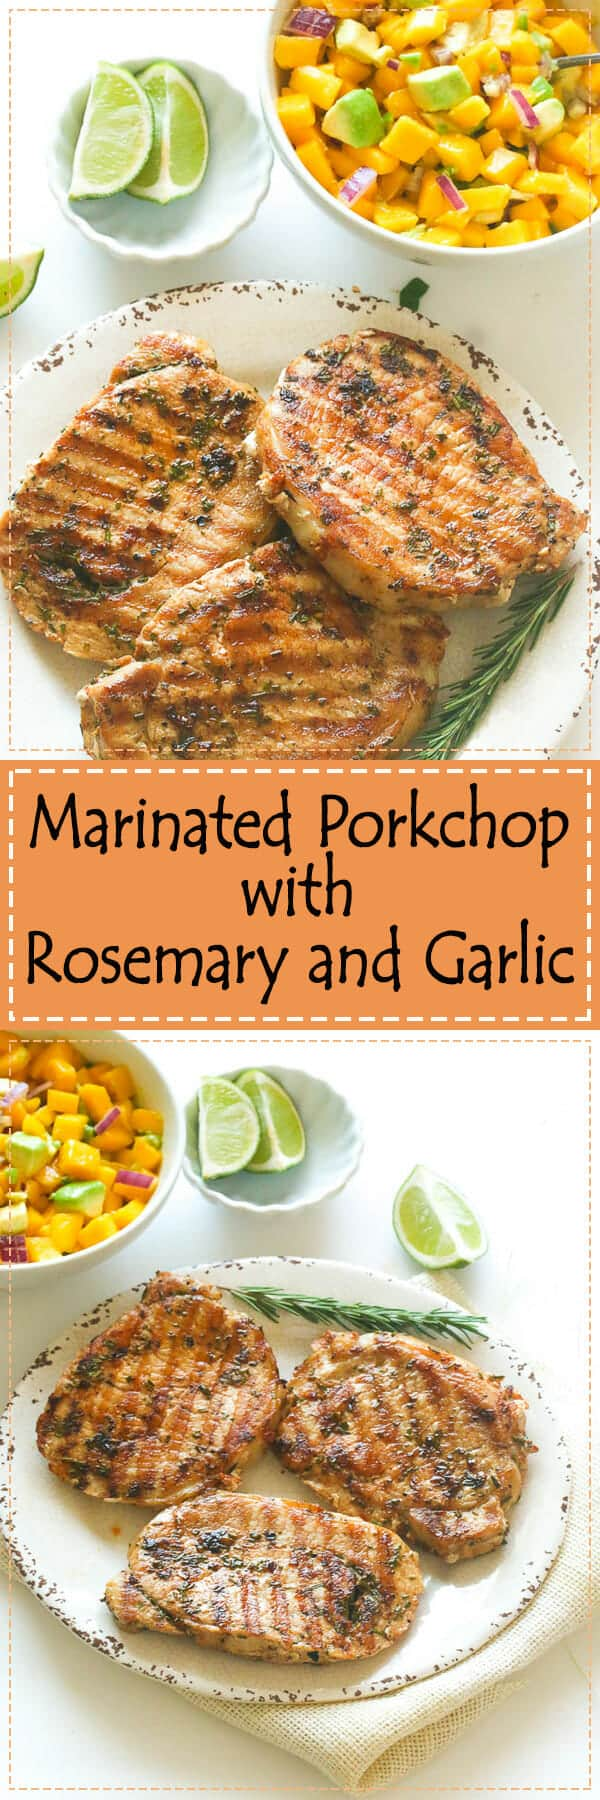 Marinated Pork Chop with Rosemary and garlic -  Made with an easy, yet tasty garlic and rosemary rub, healthy and a perfect pairing!